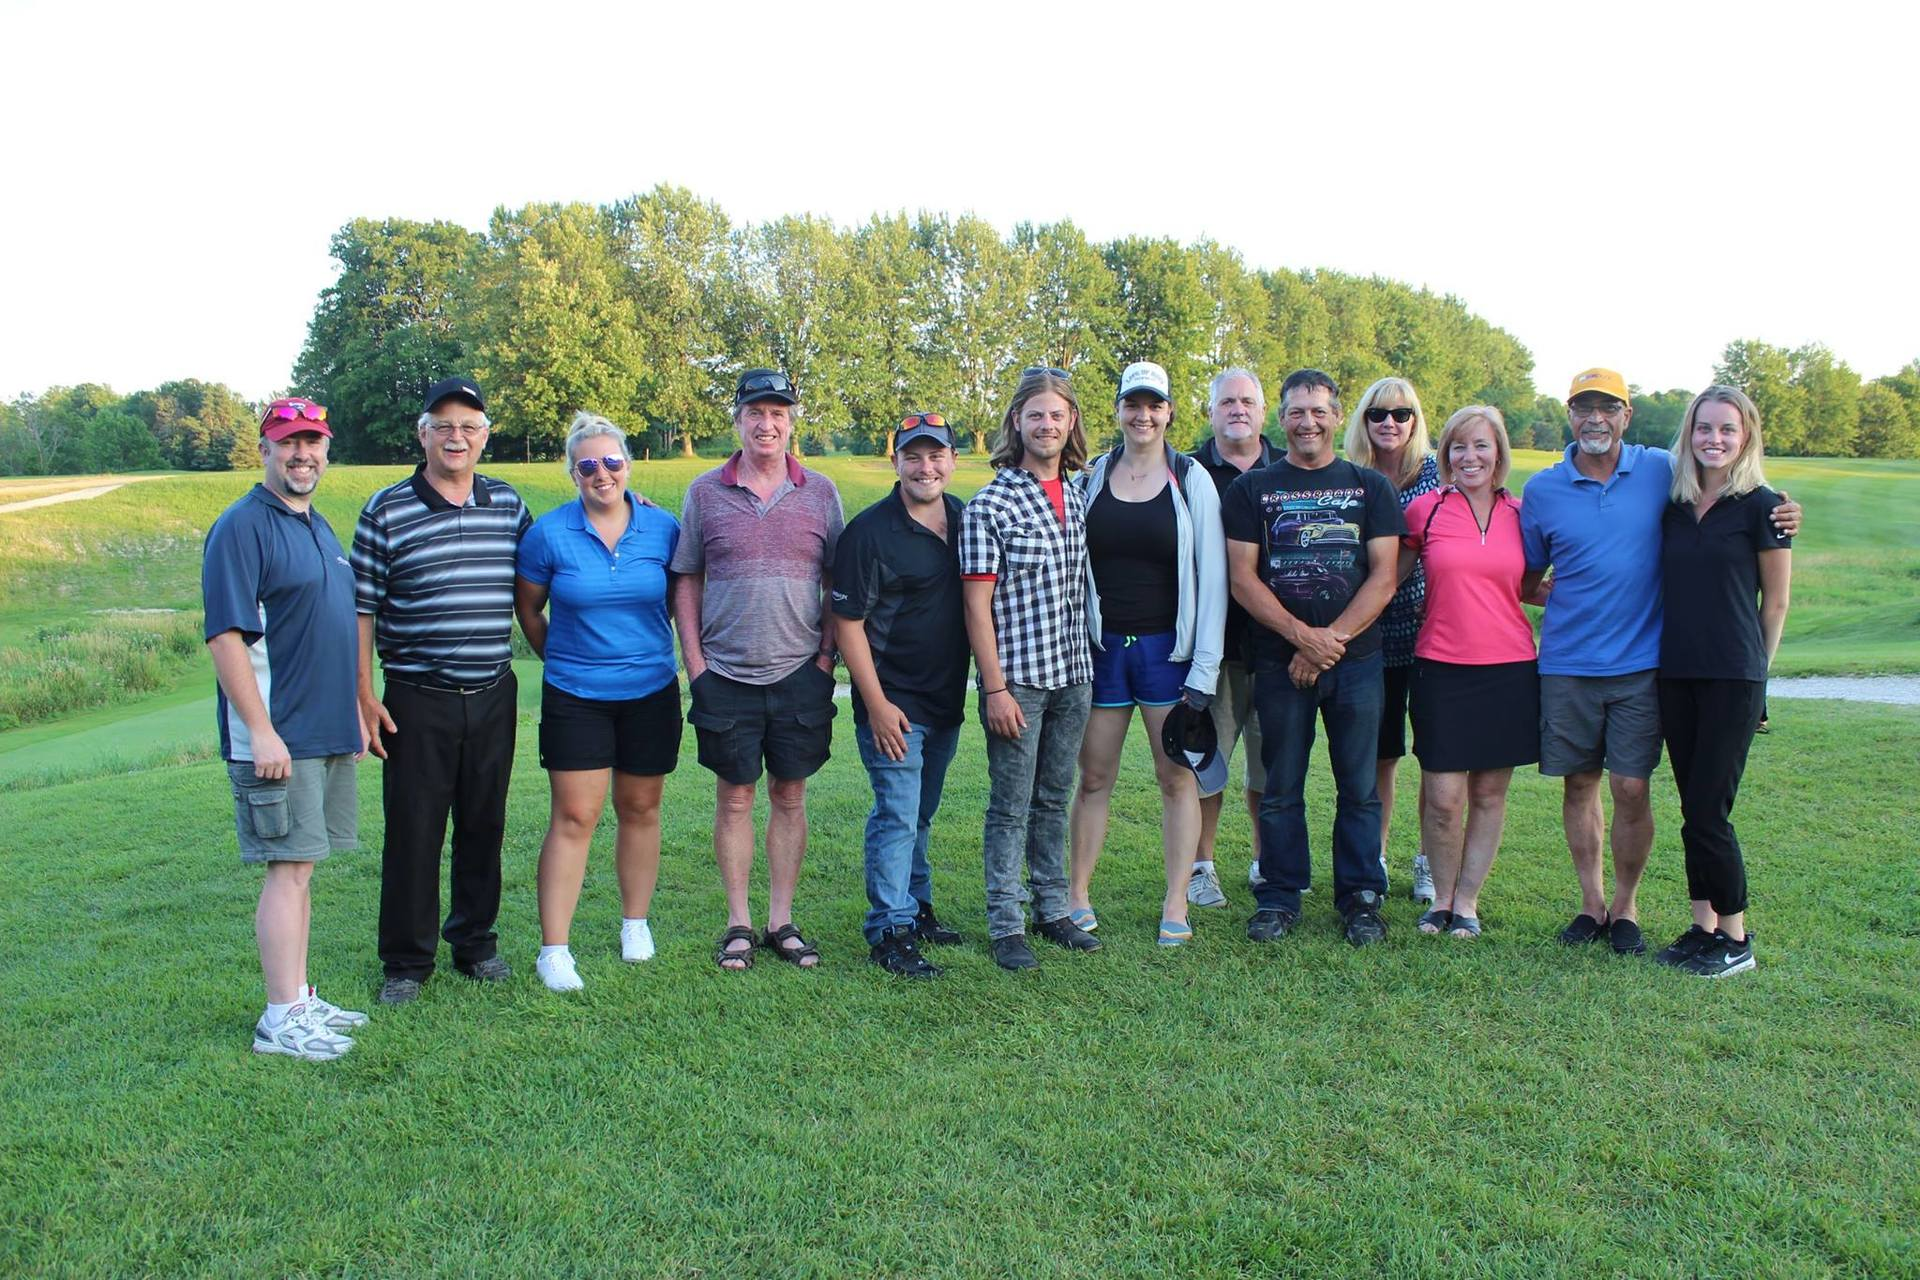 2nd Annual Justin Owen Memorial Golf Tournament